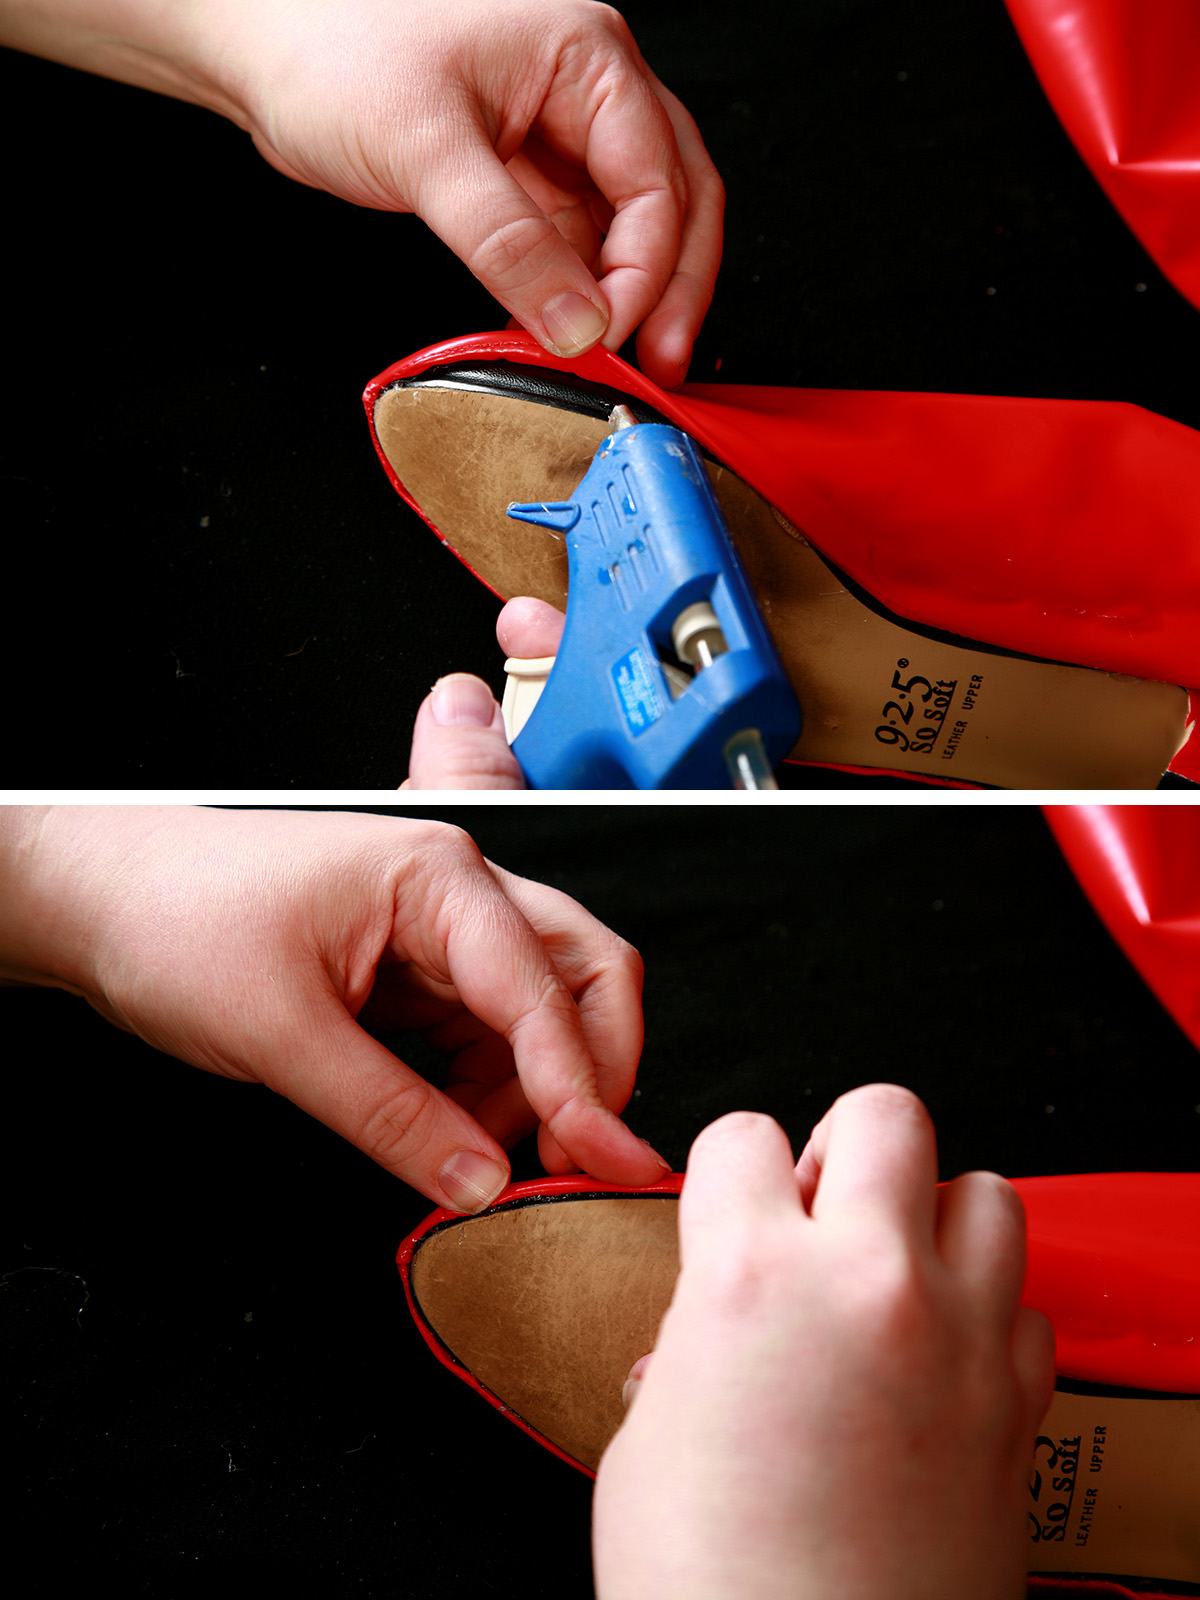 A two part compilation image showing a shiny red boot cover being stretched over a black shoe and being glued into place.